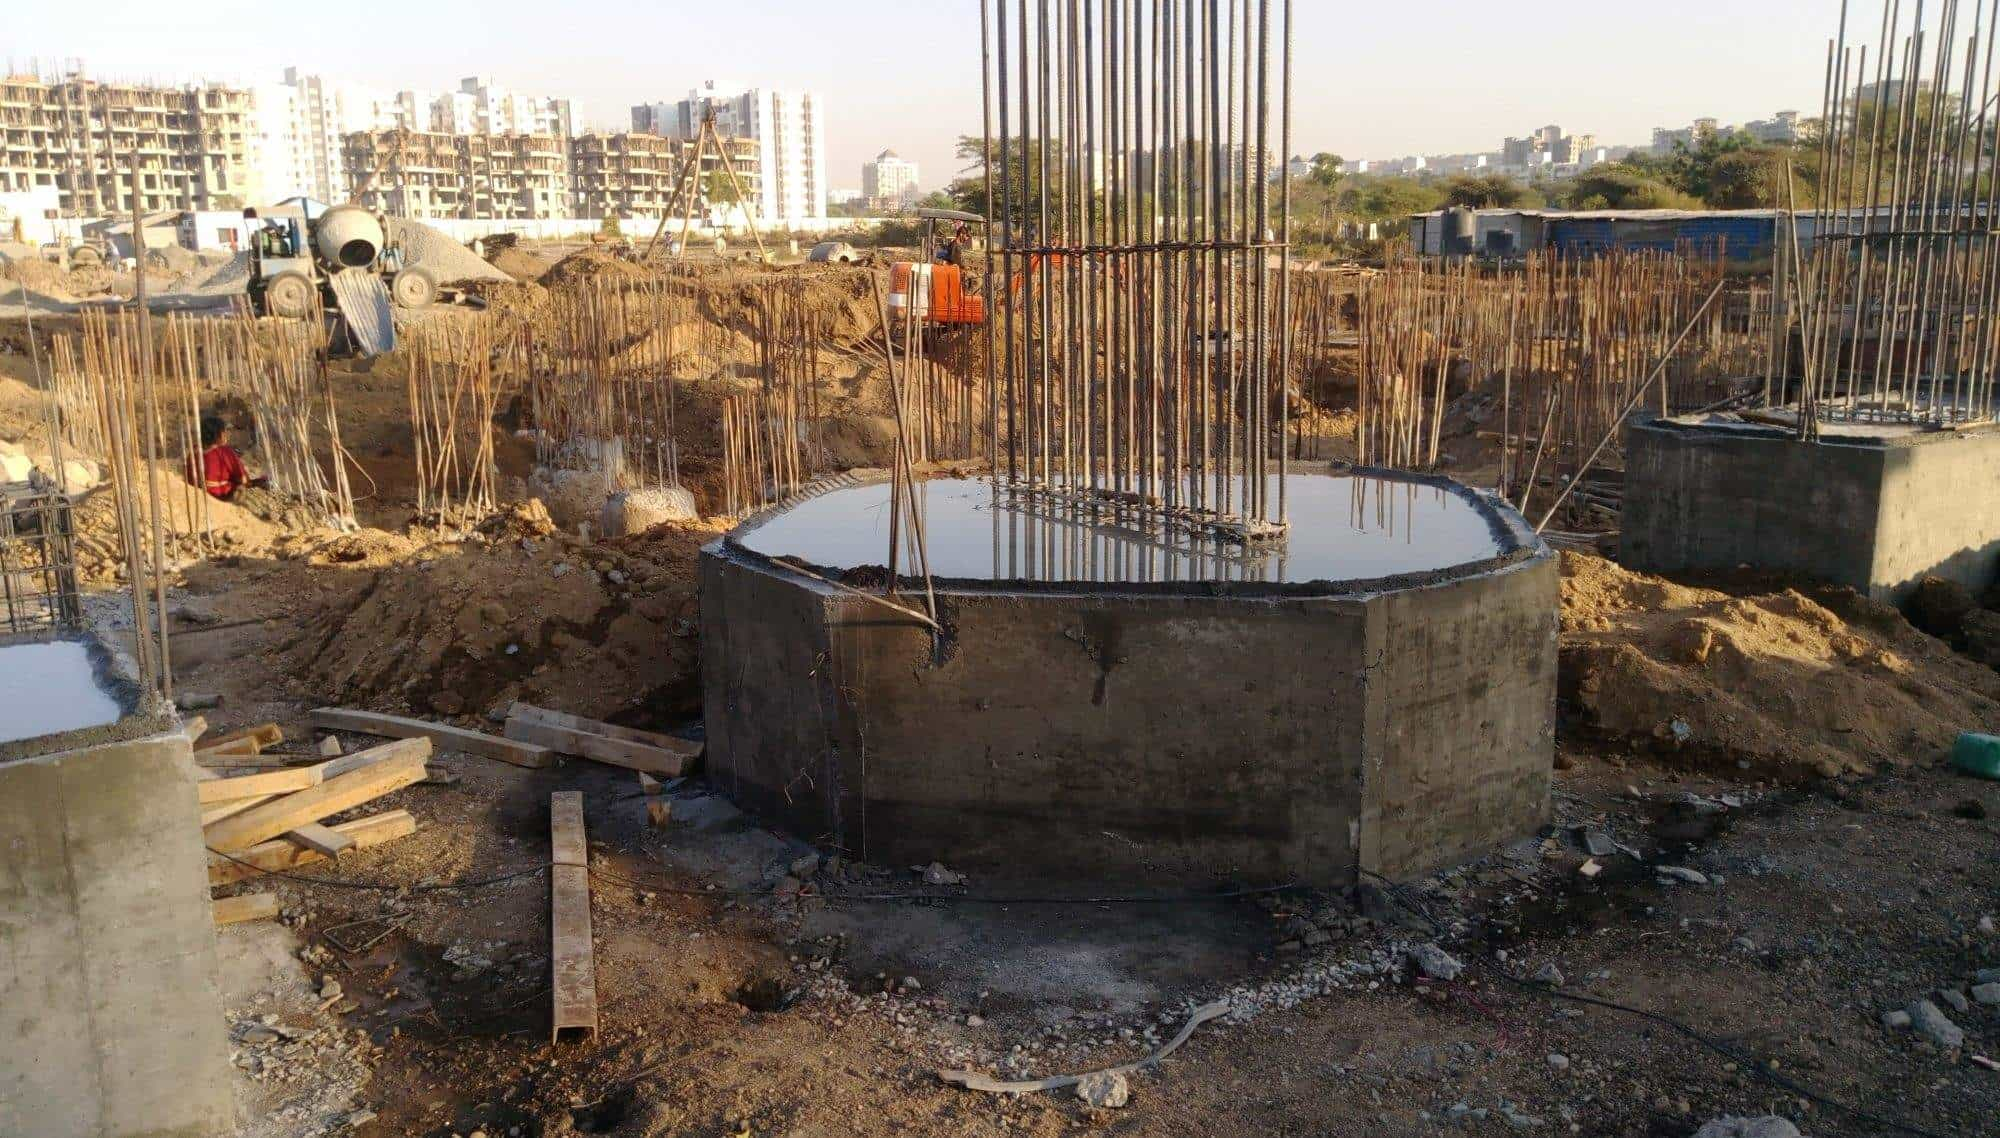 Mankar pile foundation khadki piling contractors in pune justdial solutioingenieria Image collections